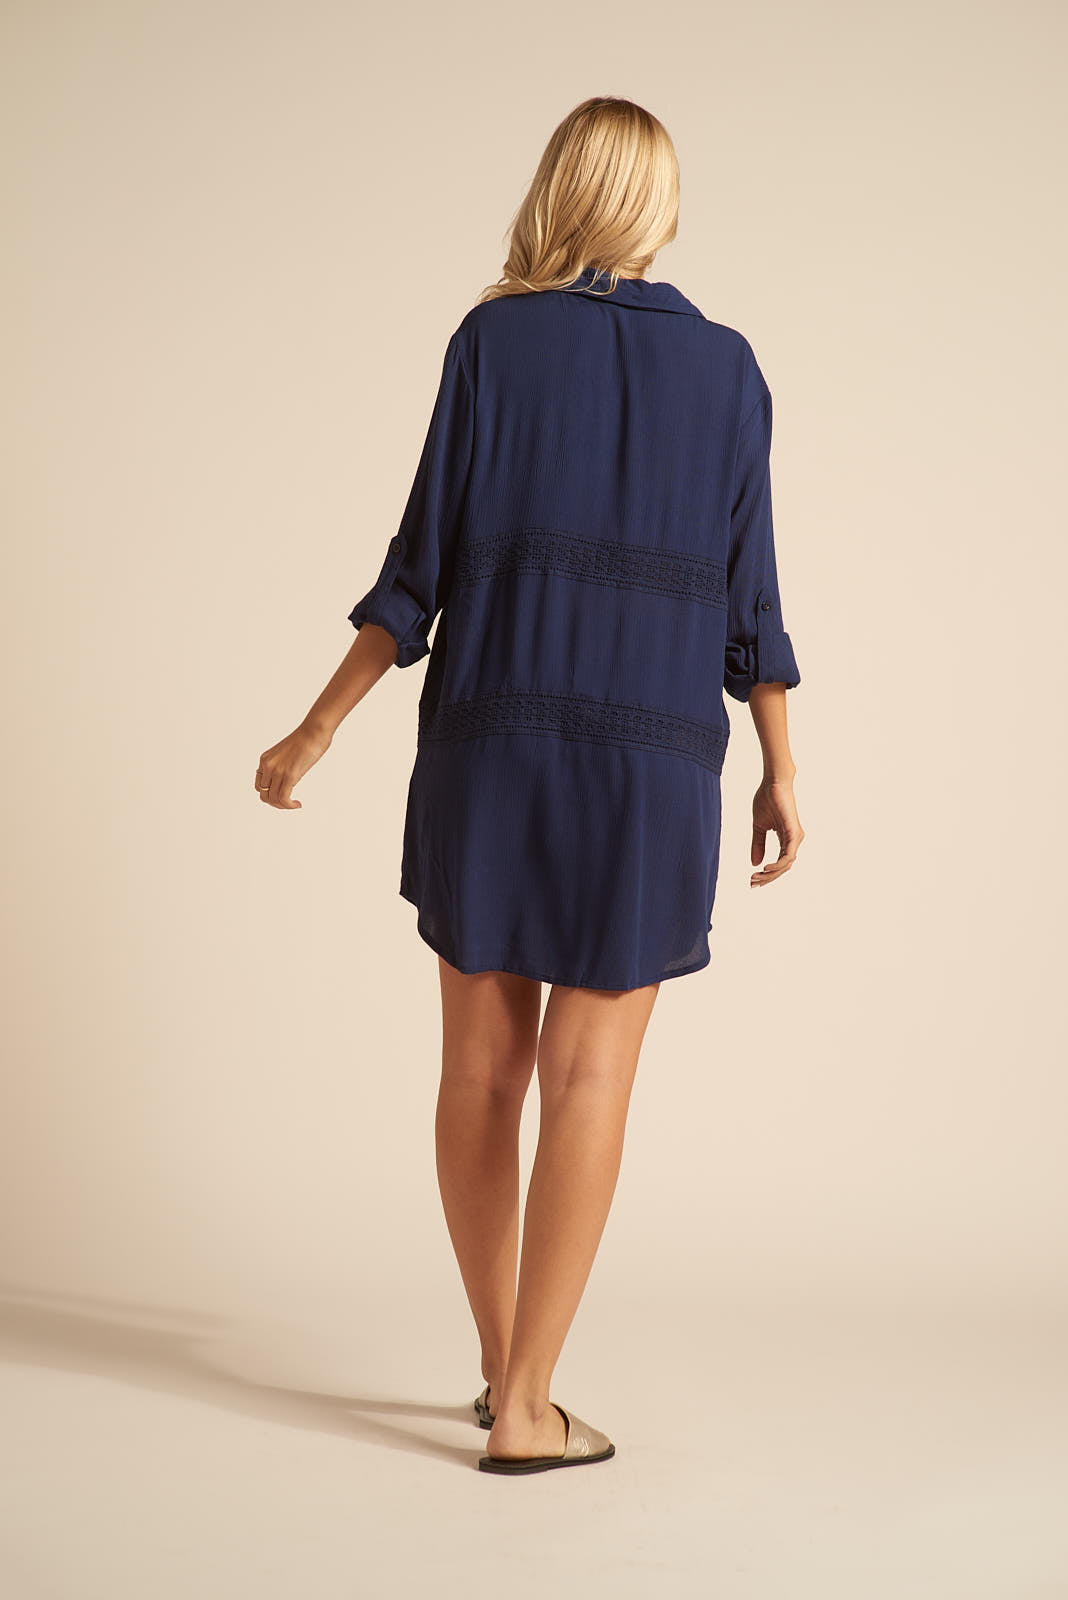 Miami Shirt Dress